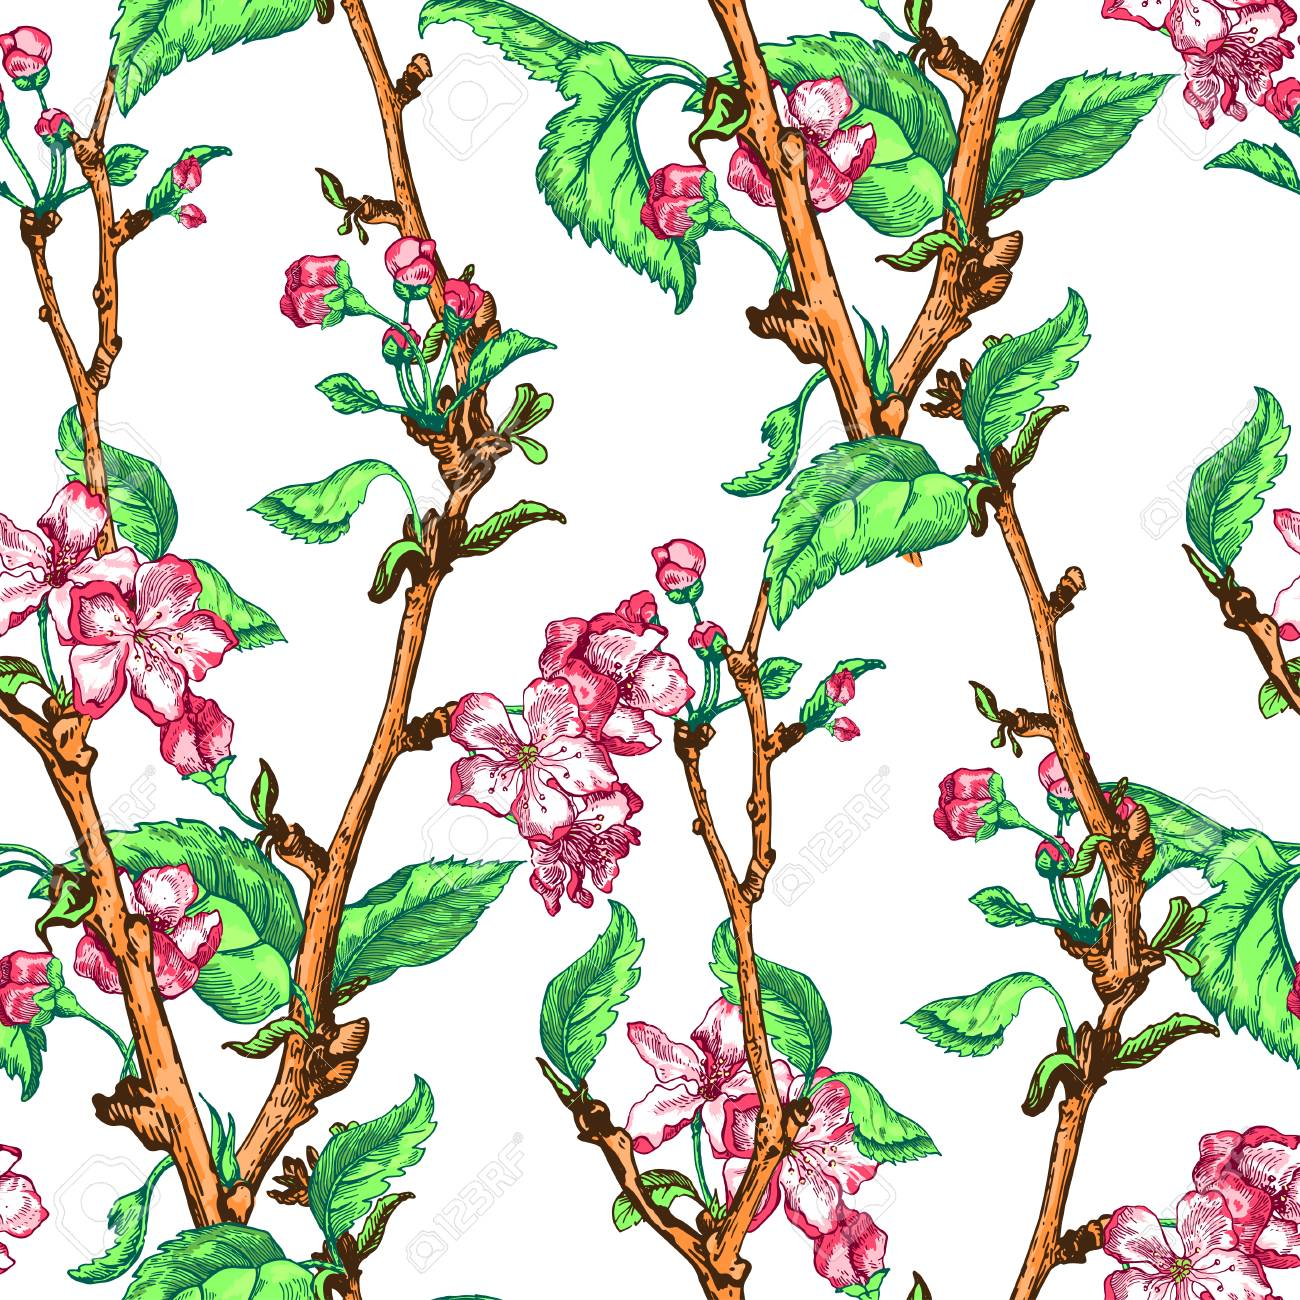 apple tree sketch design stock photo picture and royalty free image Pear Tree apple tree sketch design stock photo 73528725